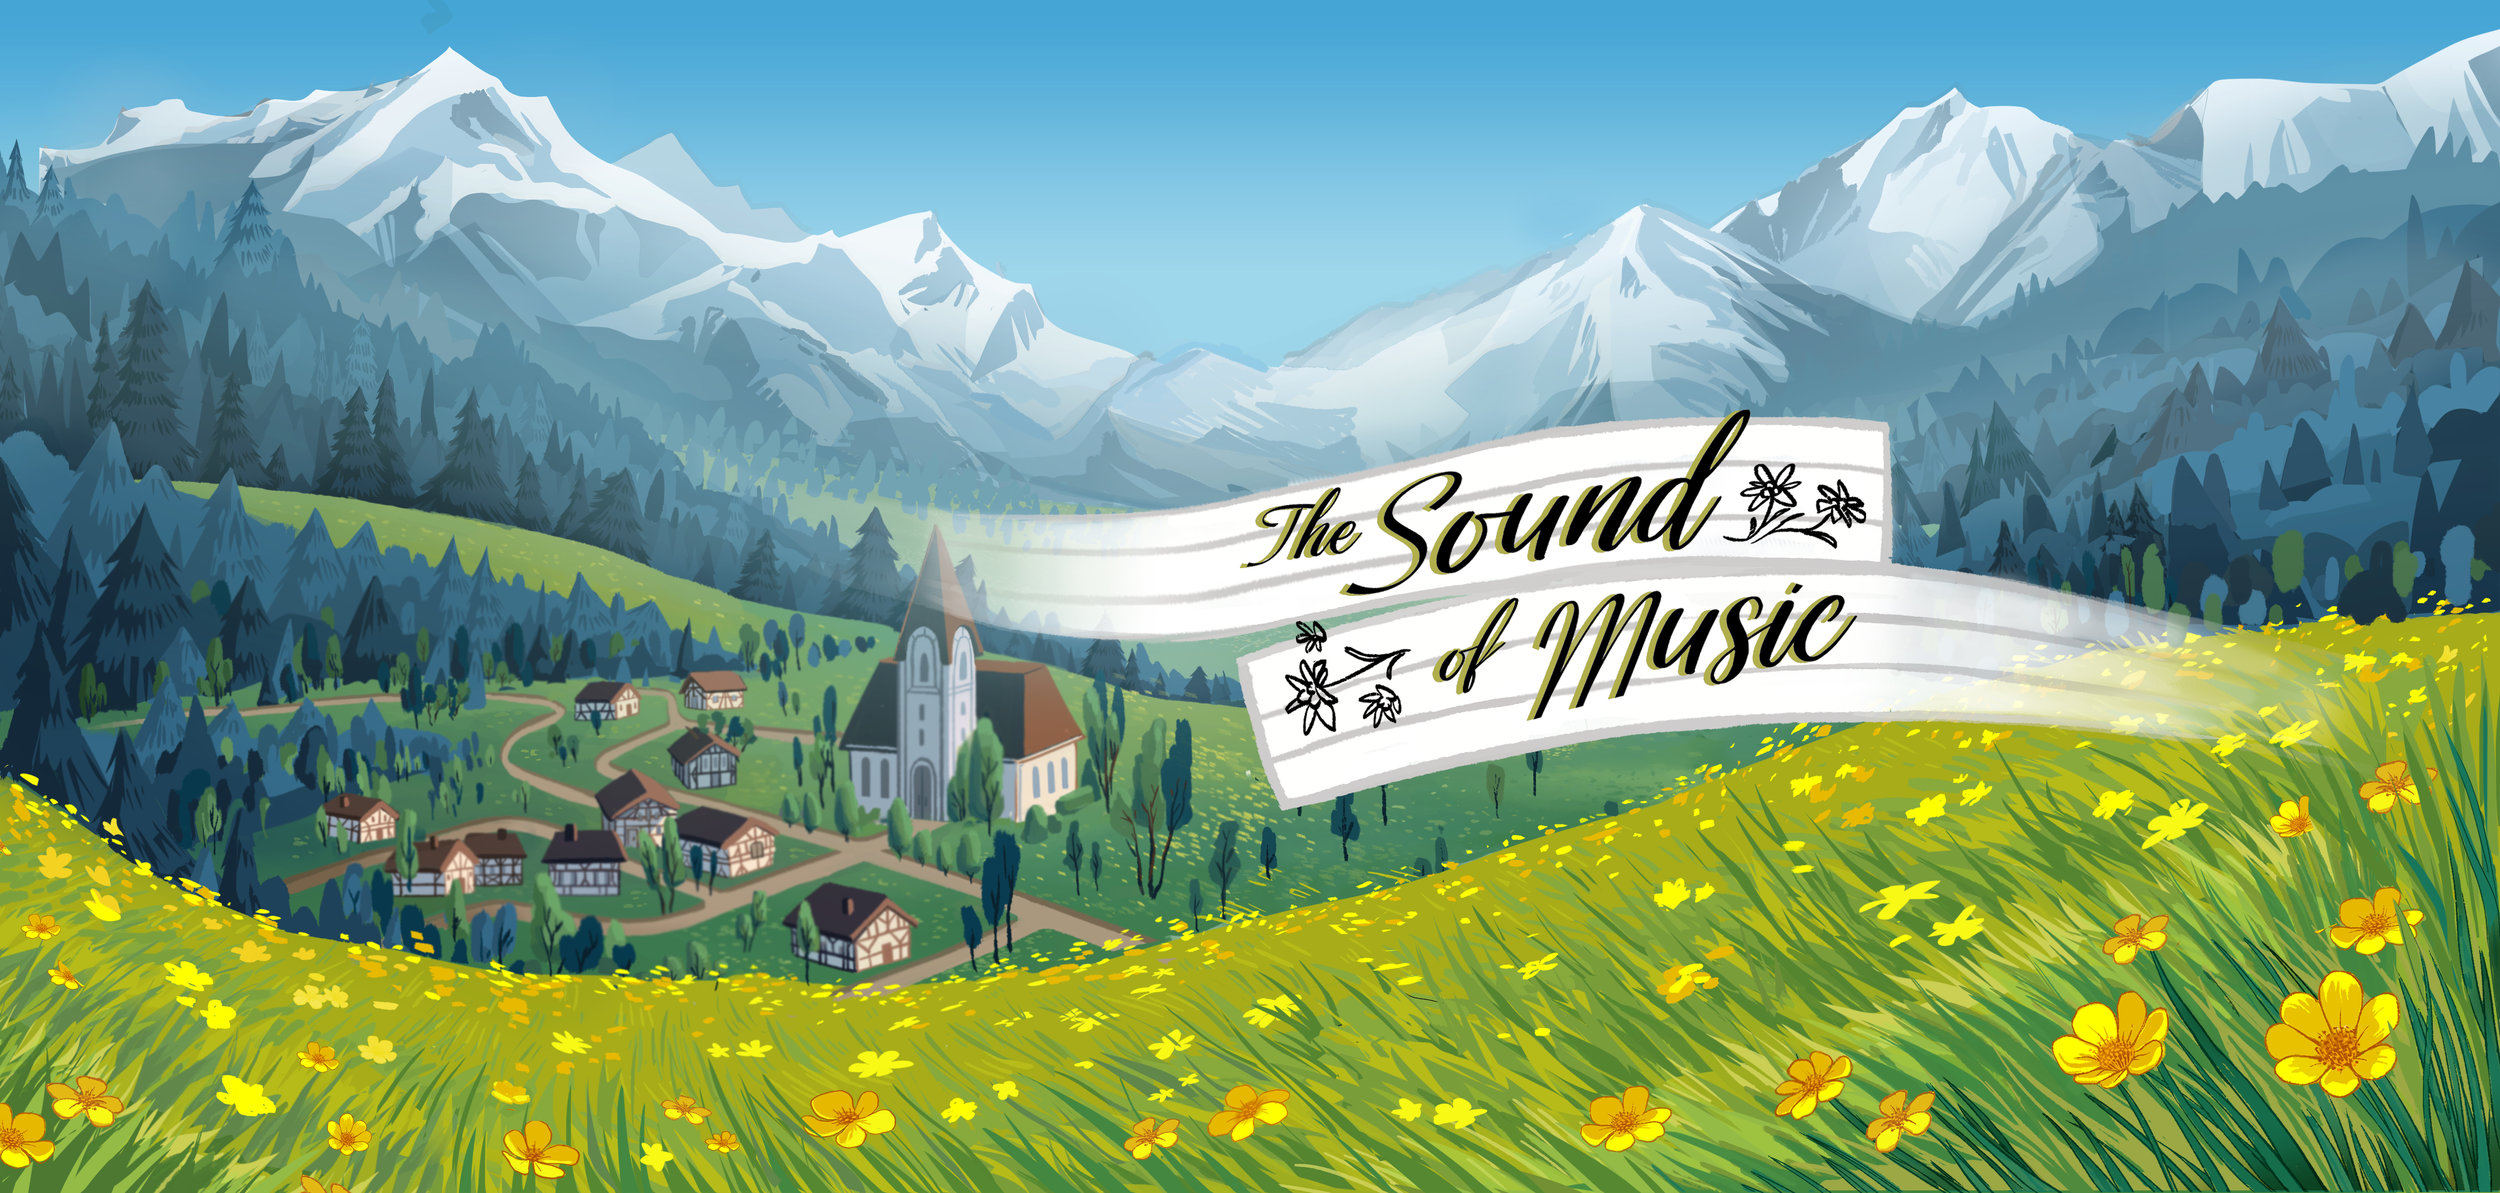 Sound of Music title Kate budak.jpg